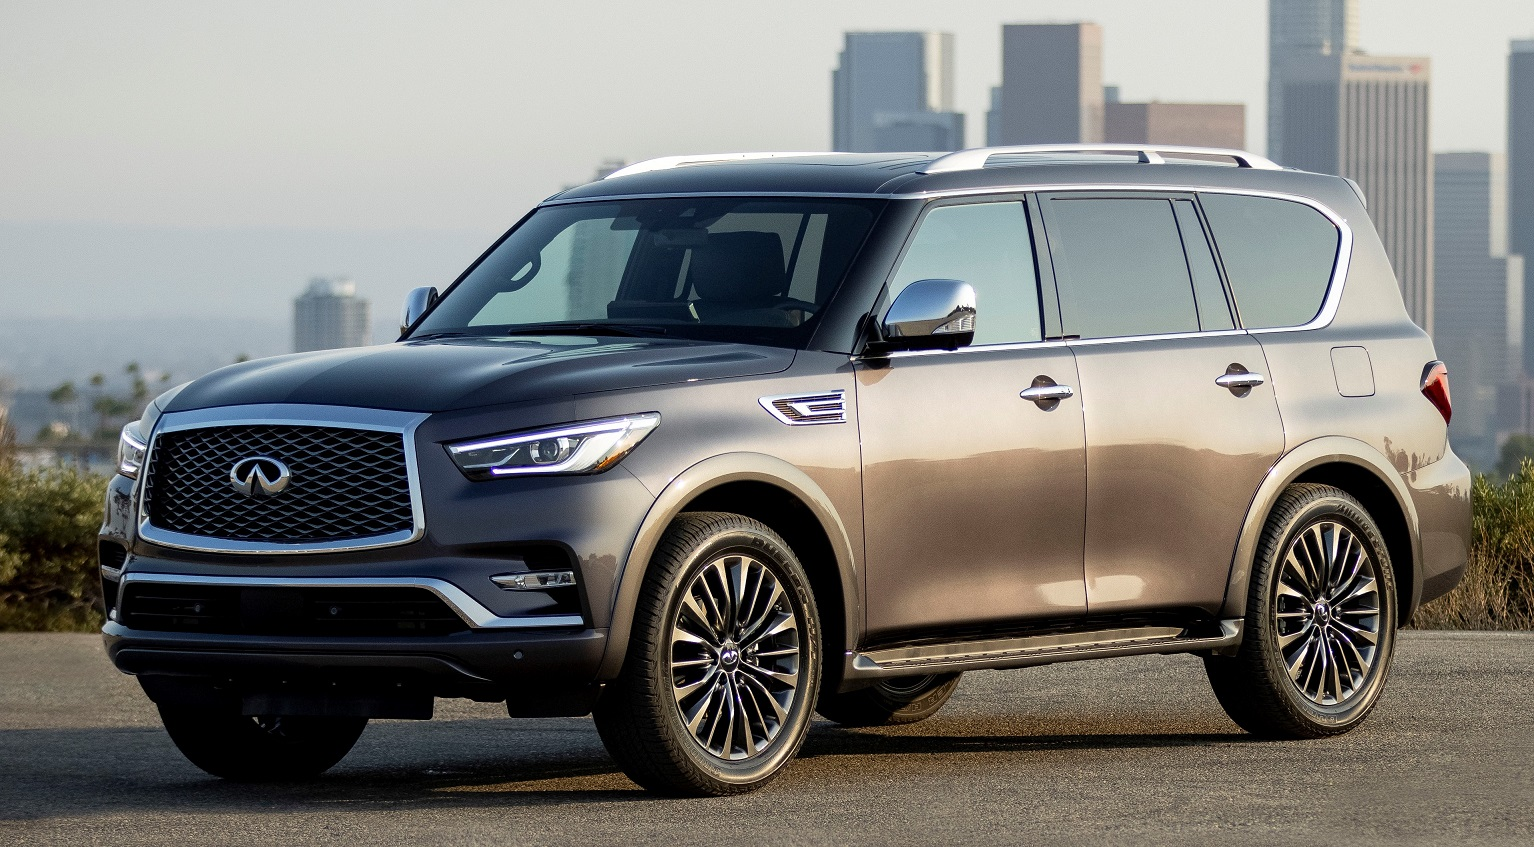 An exterior view of the 2022 Infiniti QX80 SUV